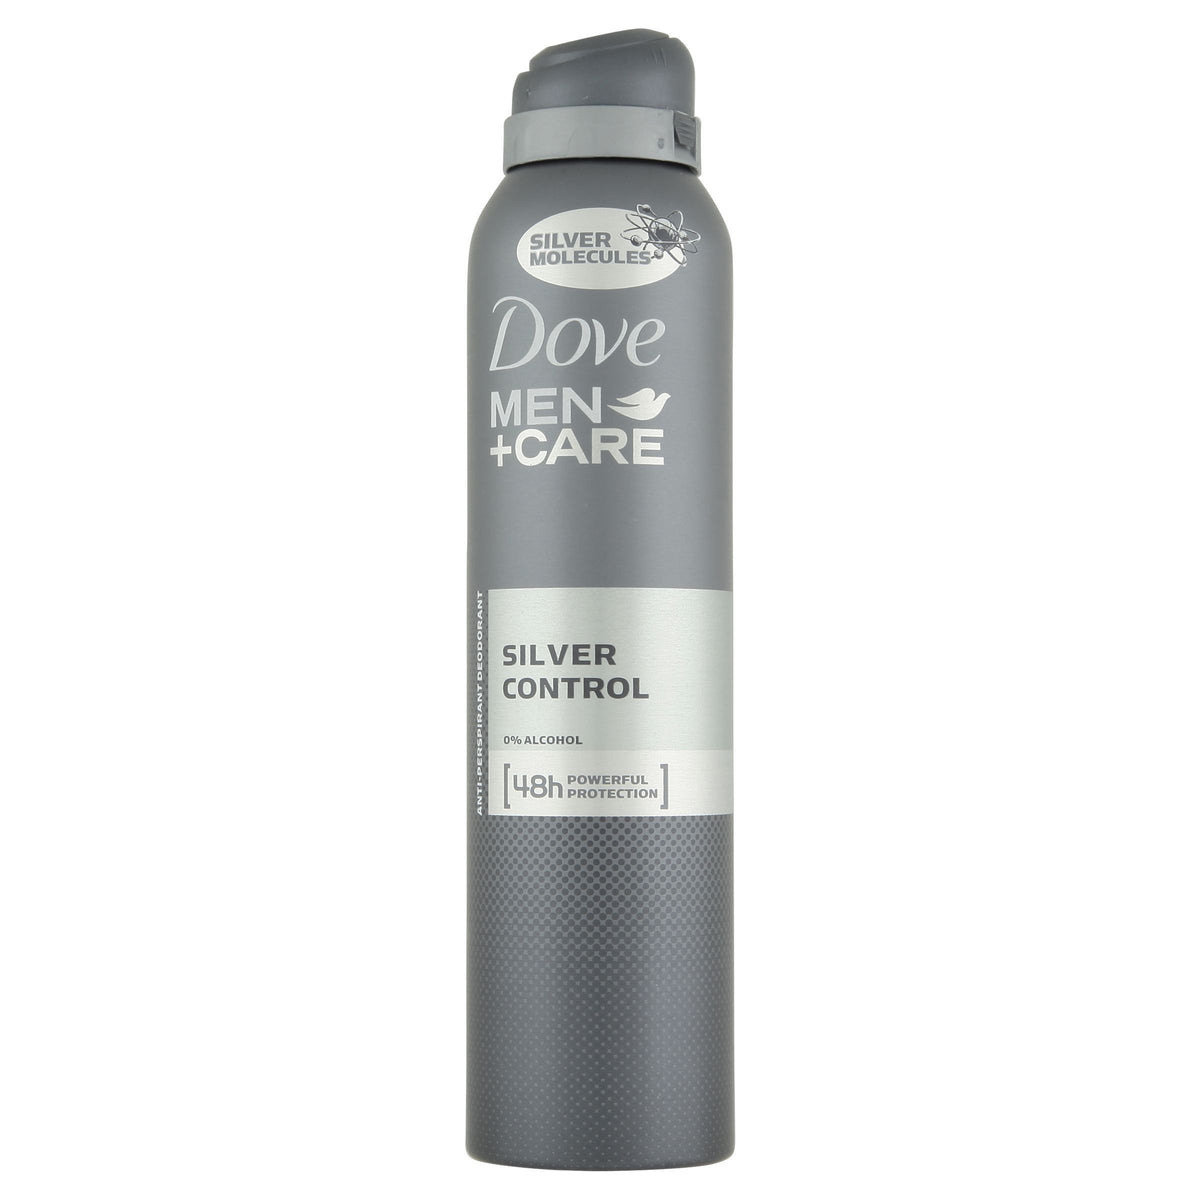 Dove Men+Care Silver Control AP Deodorant 250ml - Pack of 4